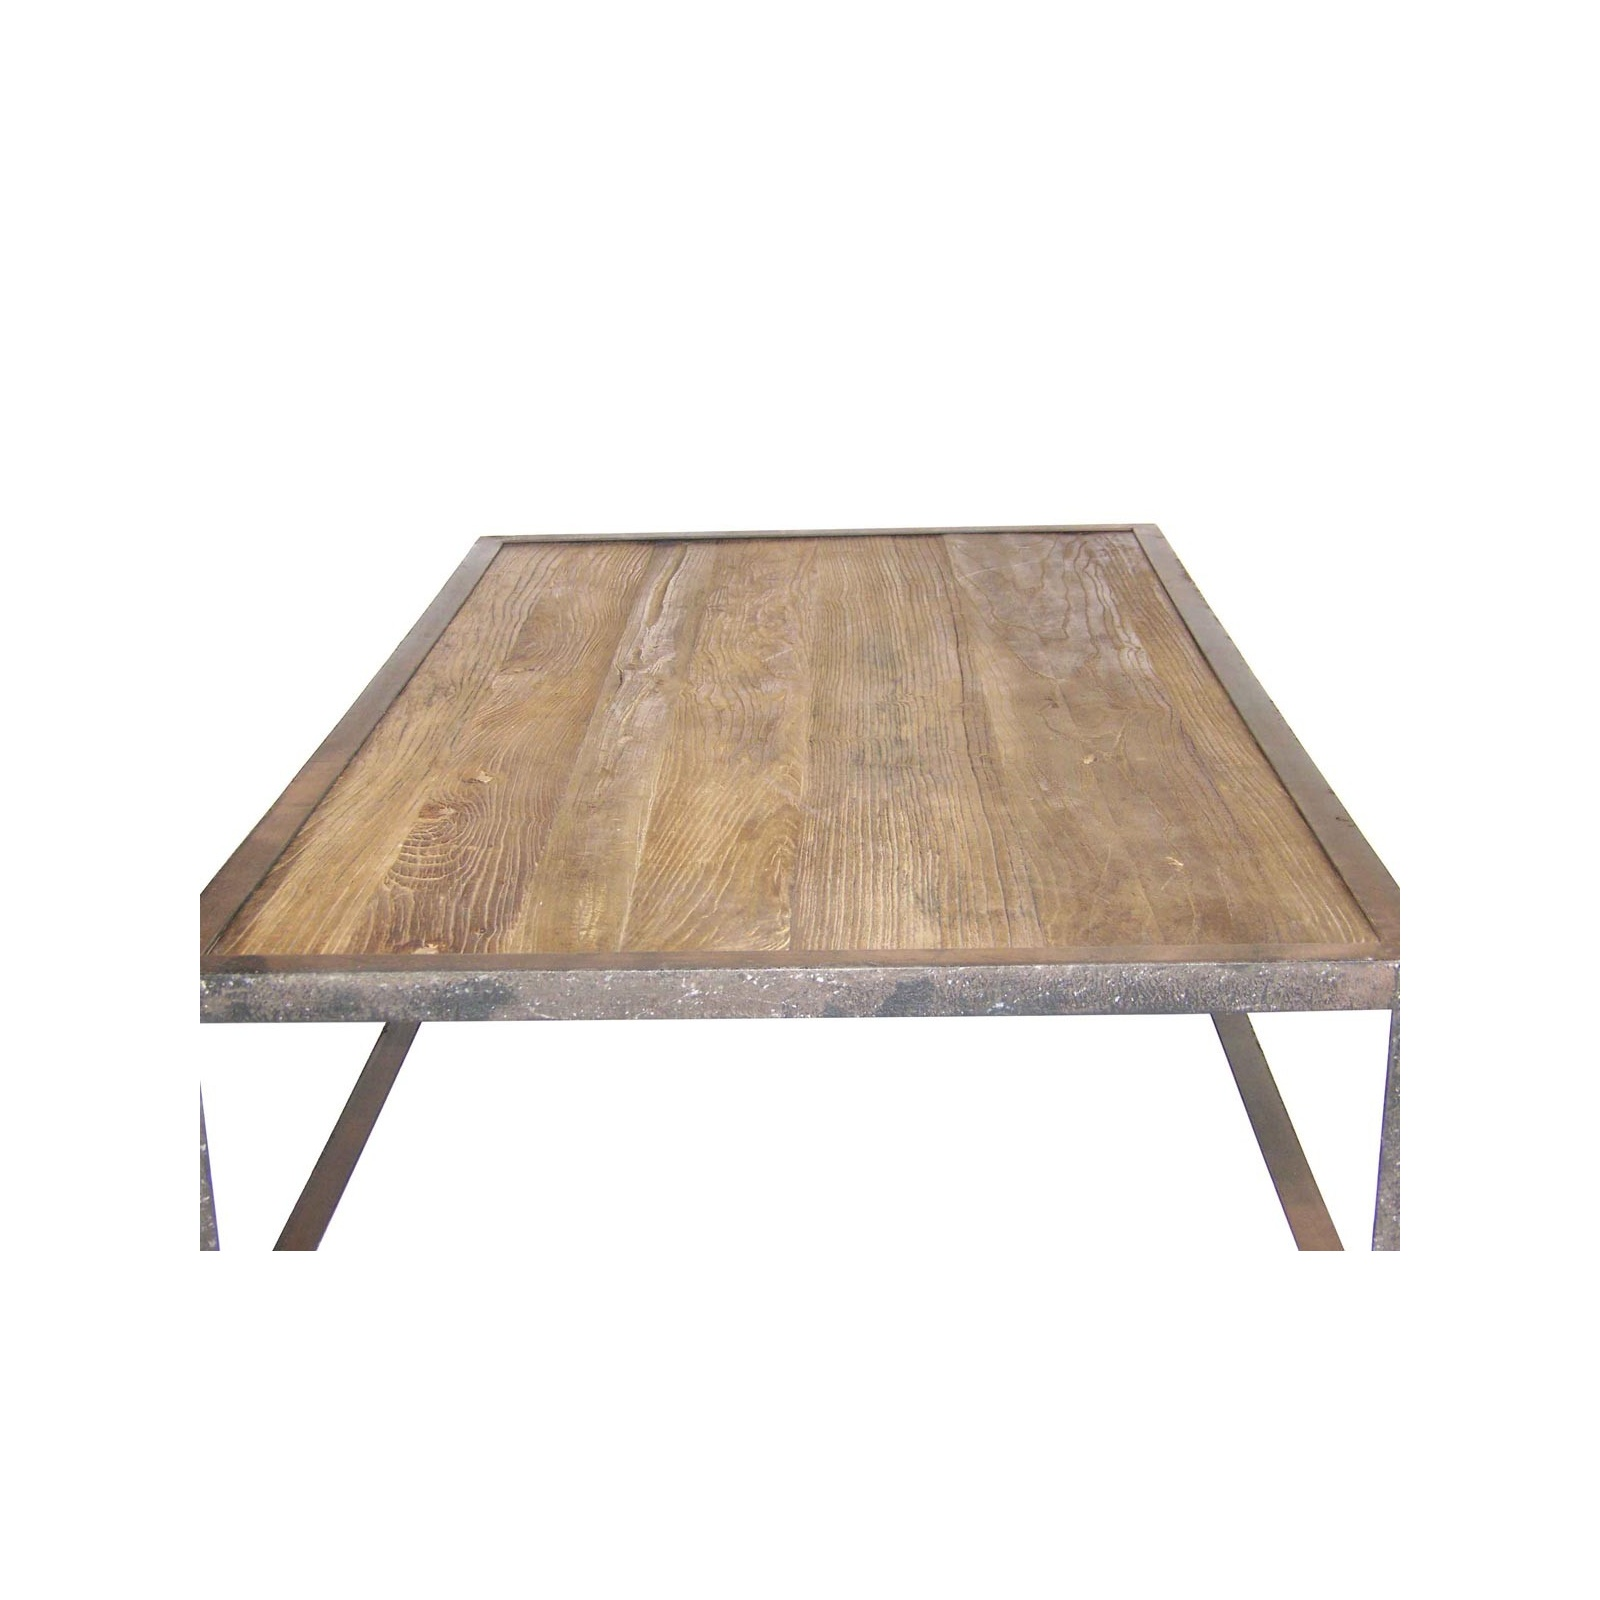 Table basse industriel jp2b d coration for Table basse norvegienne